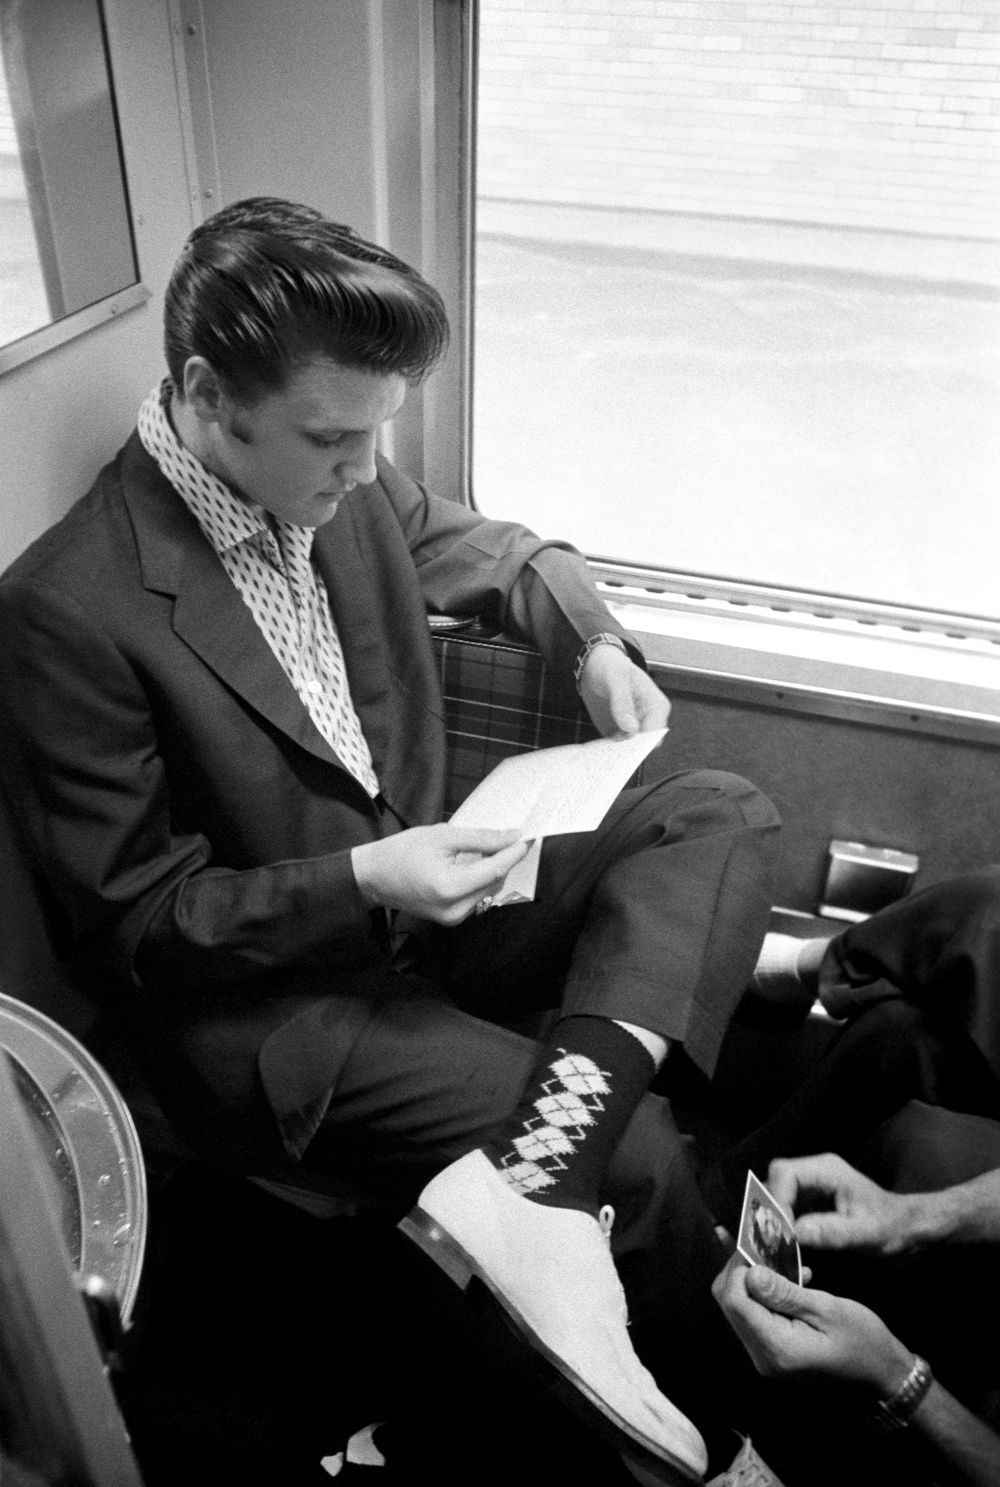 Aboard the train to memphis, Elvis reads some of his fan mail.